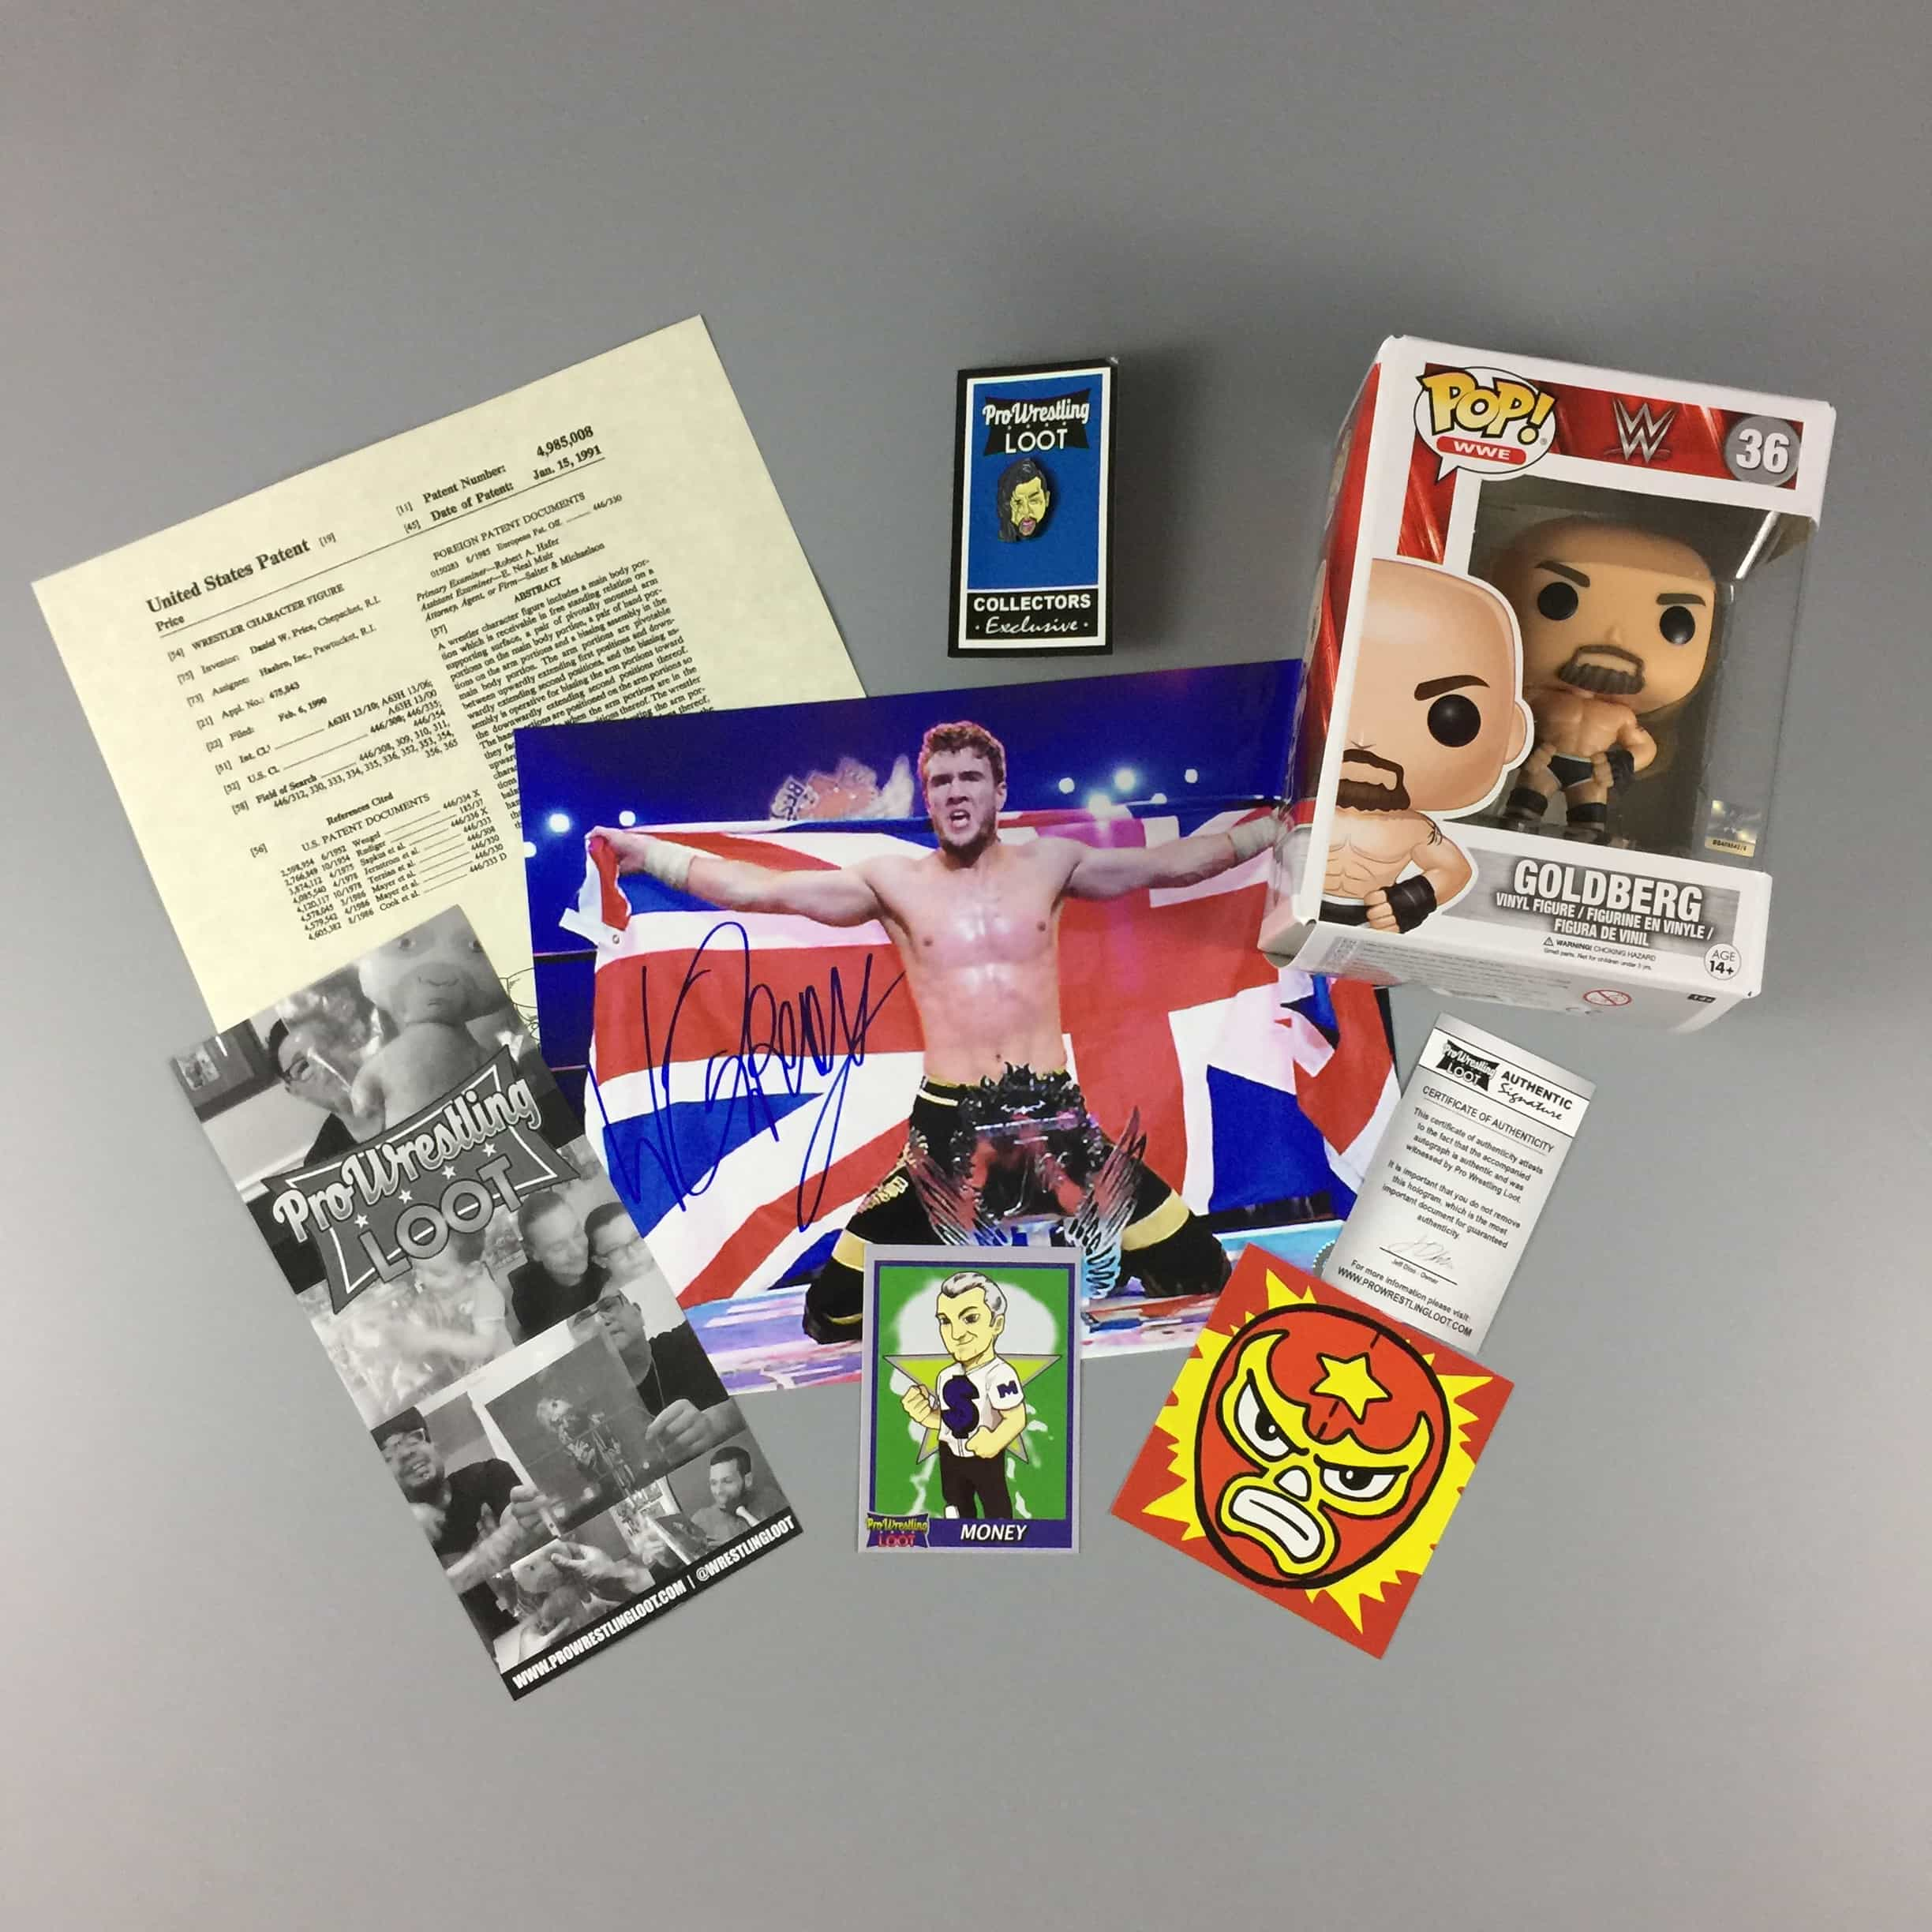 Pro Wrestling Loot August 2017 Subscription Box Review + Coupon